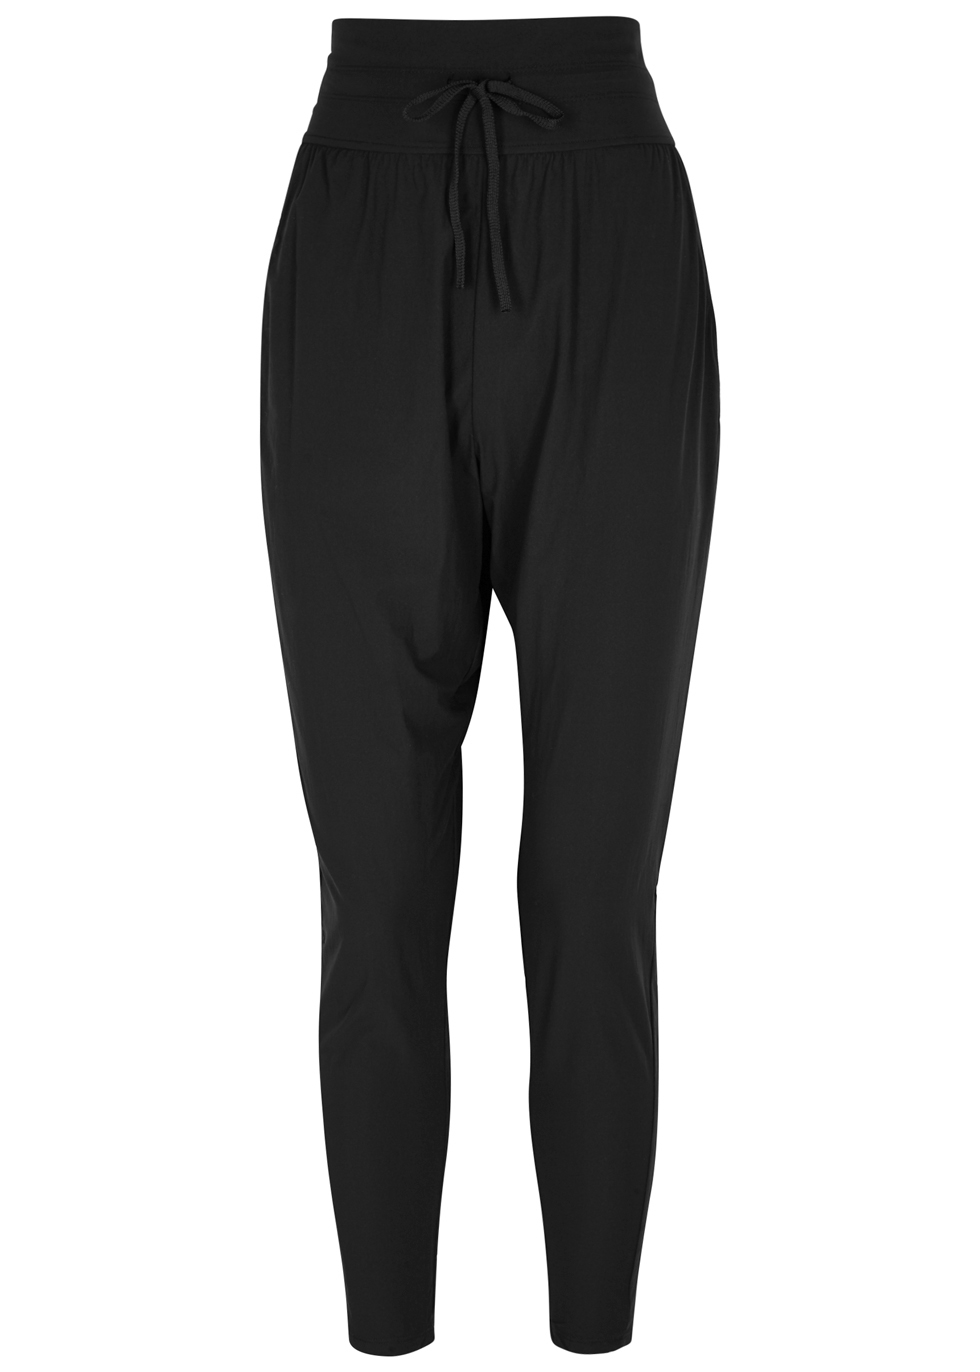 FREE PEOPLE MOVEMENT CARDIO TAPERED JOGGING TROUSERS